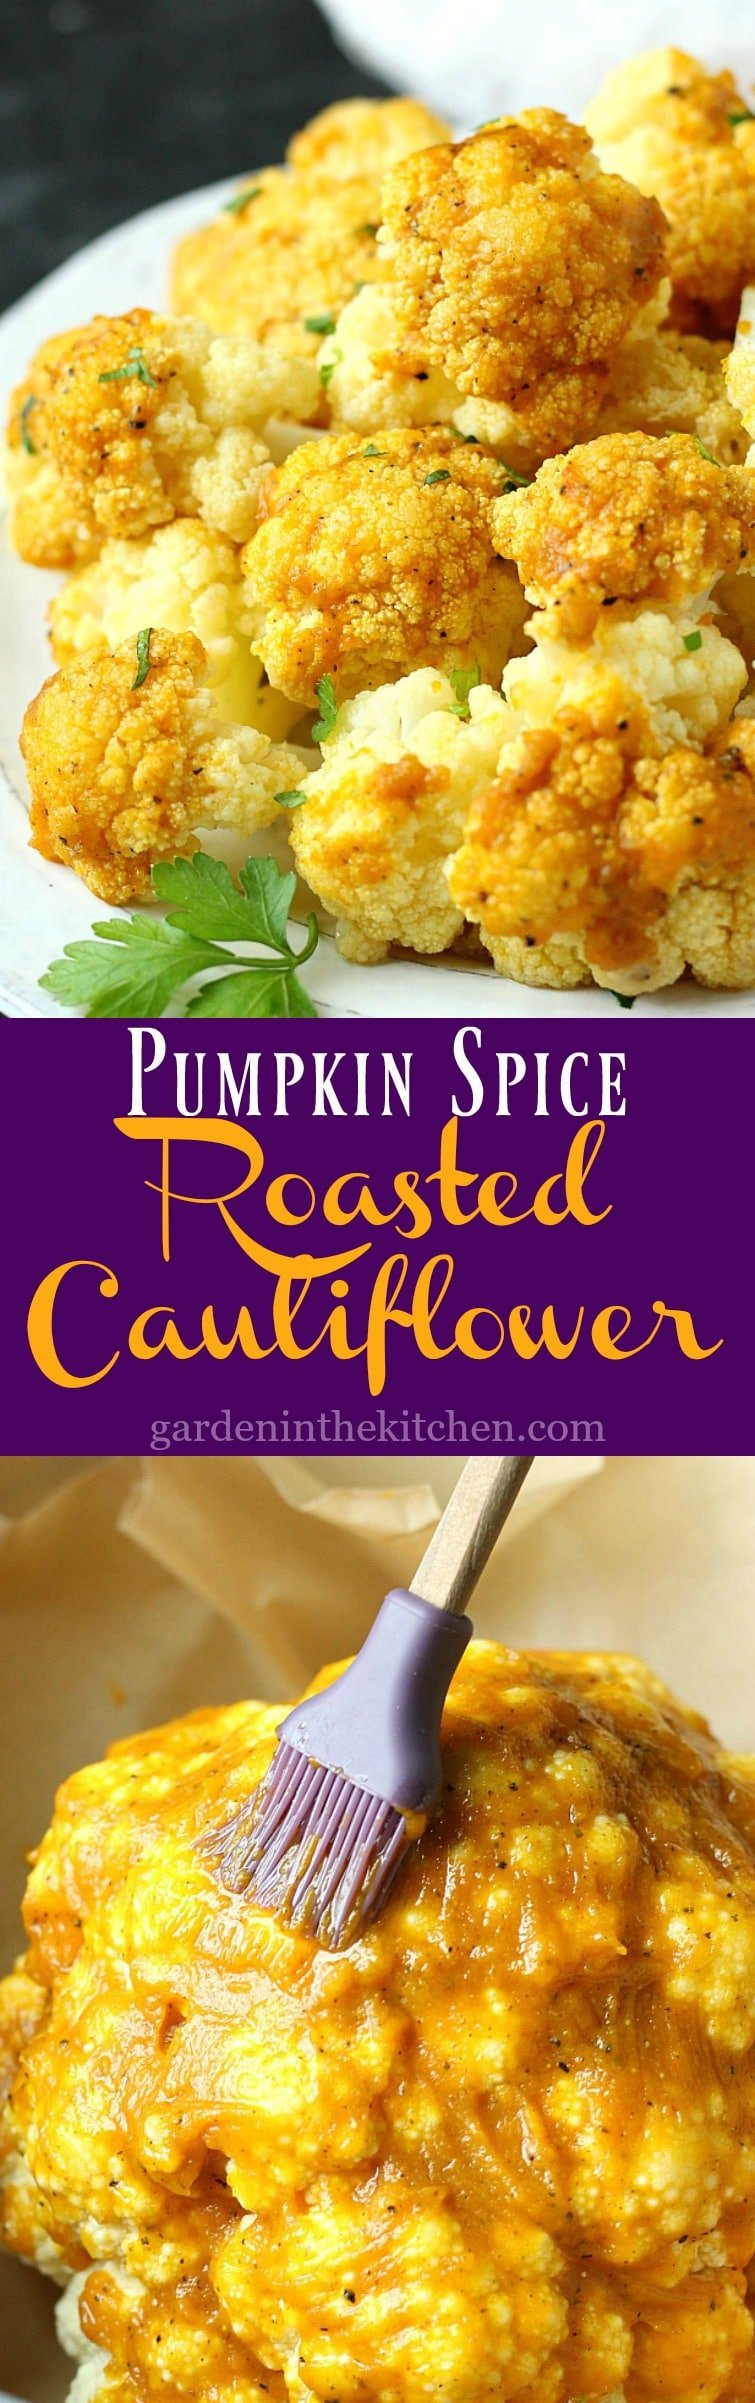 Pumpkin Spice Roasted Cauliflower | Garden in the Kitchen